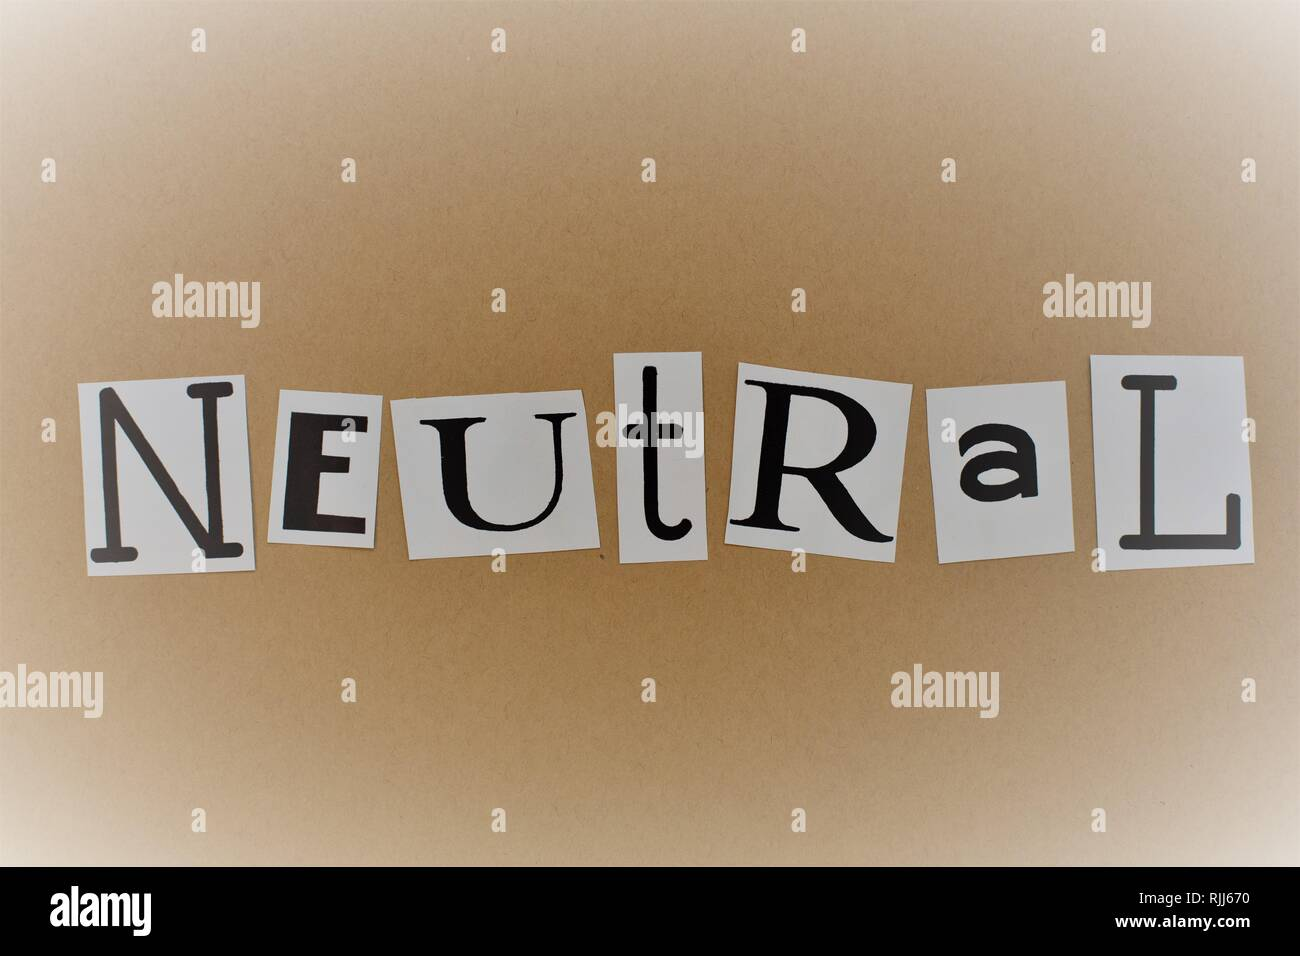 The word 'neutral' spelled out in cut out letters. - Stock Image